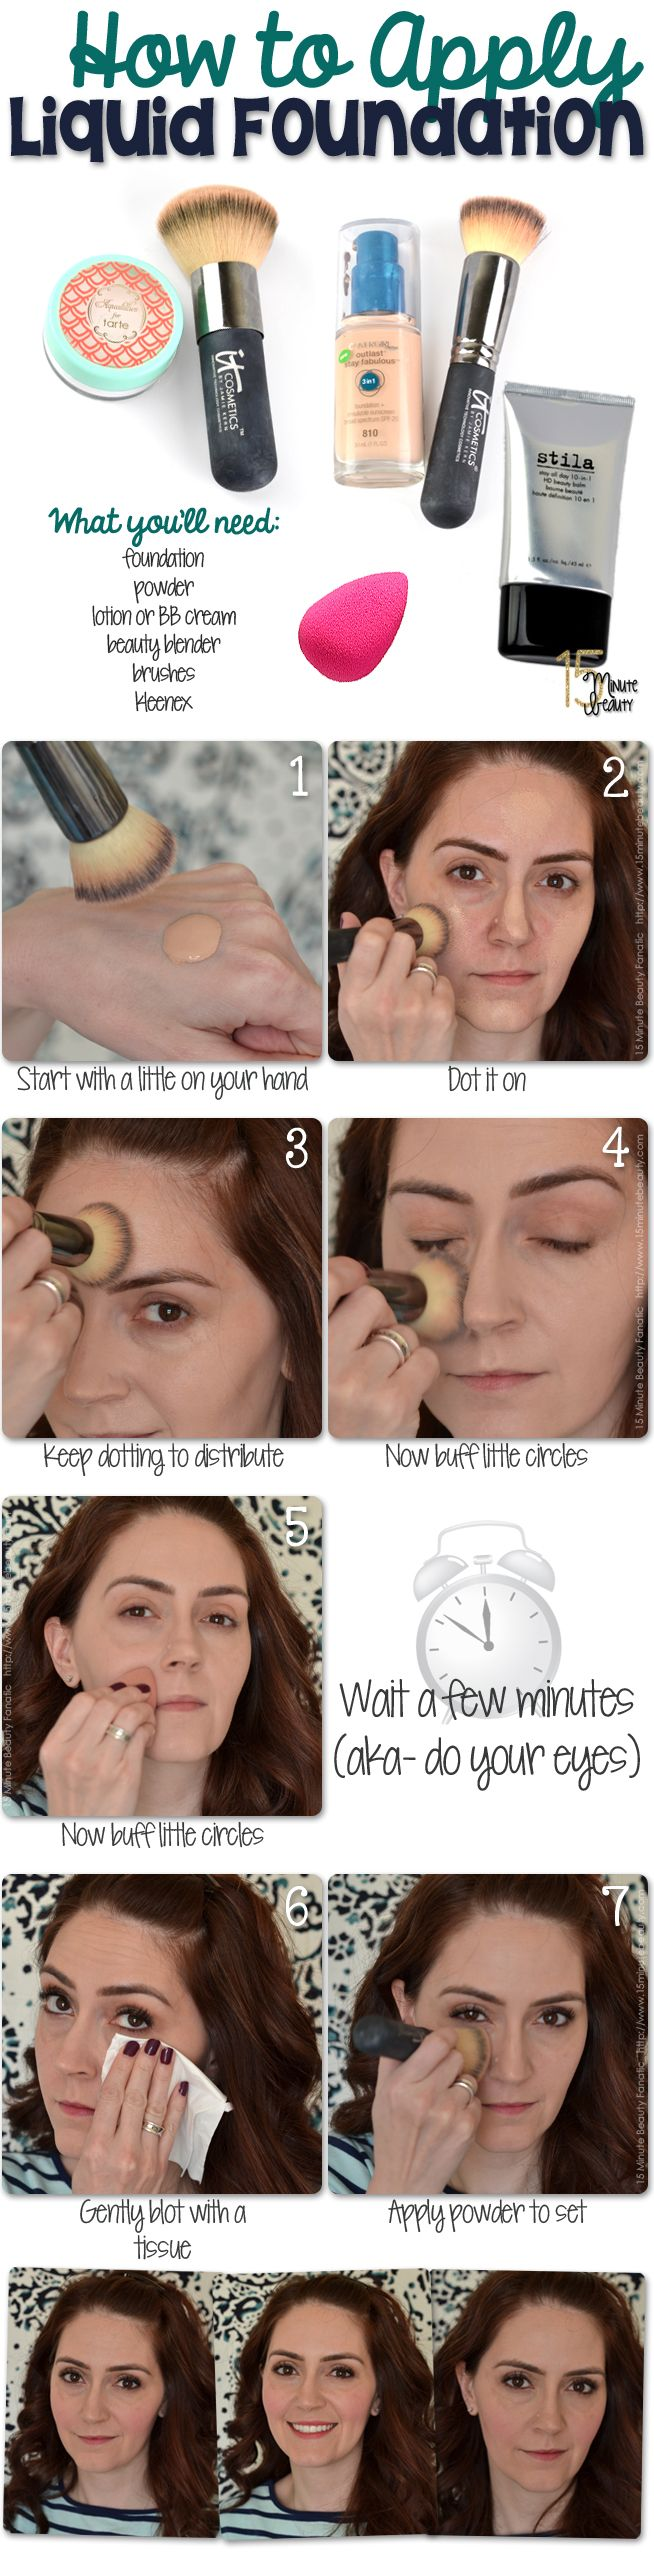 How I Apply Liquid Foundation for a Flawless (and Natural) Finish! via @15 Minute Beauty